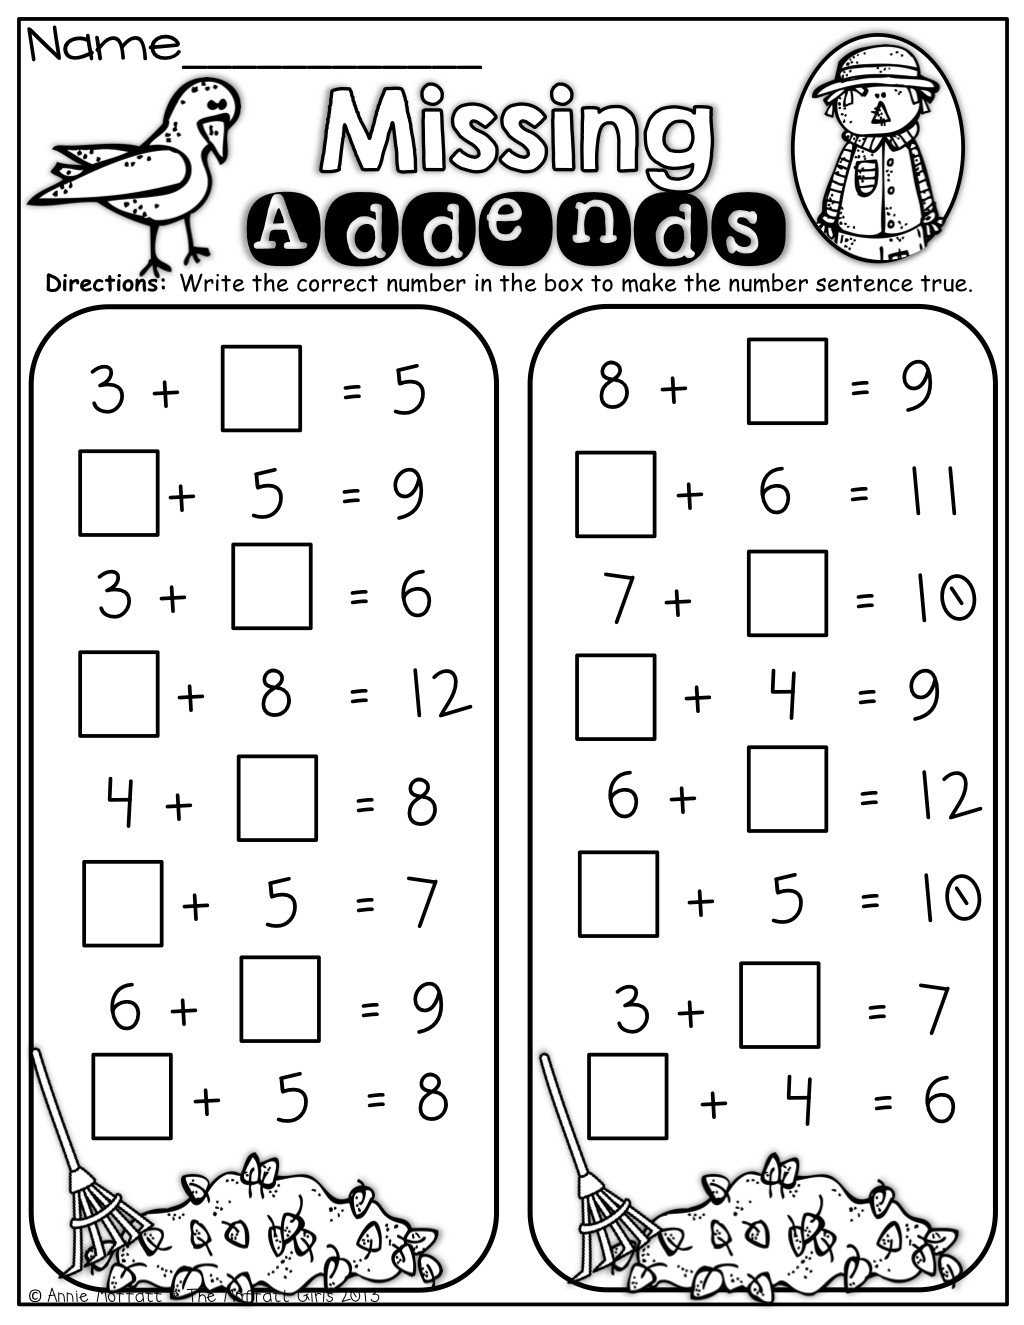 Missing Addends Worksheets First Grade Missing Addend Worksheet 1st Grade